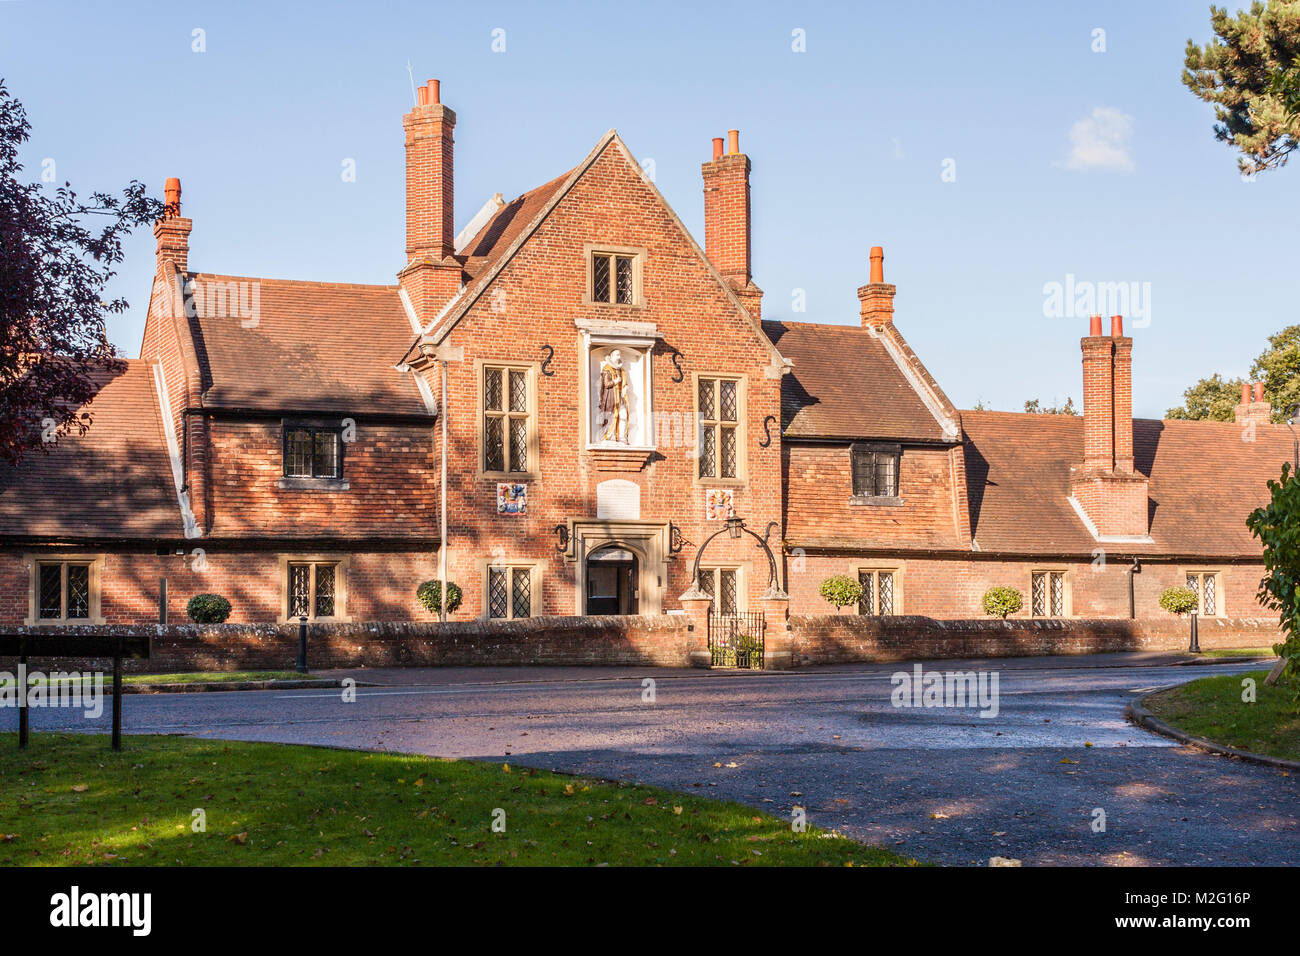 Jesus Hospitlal Almshouses, Bray, Berkshire, South East England, GB, UK. - Stock Image